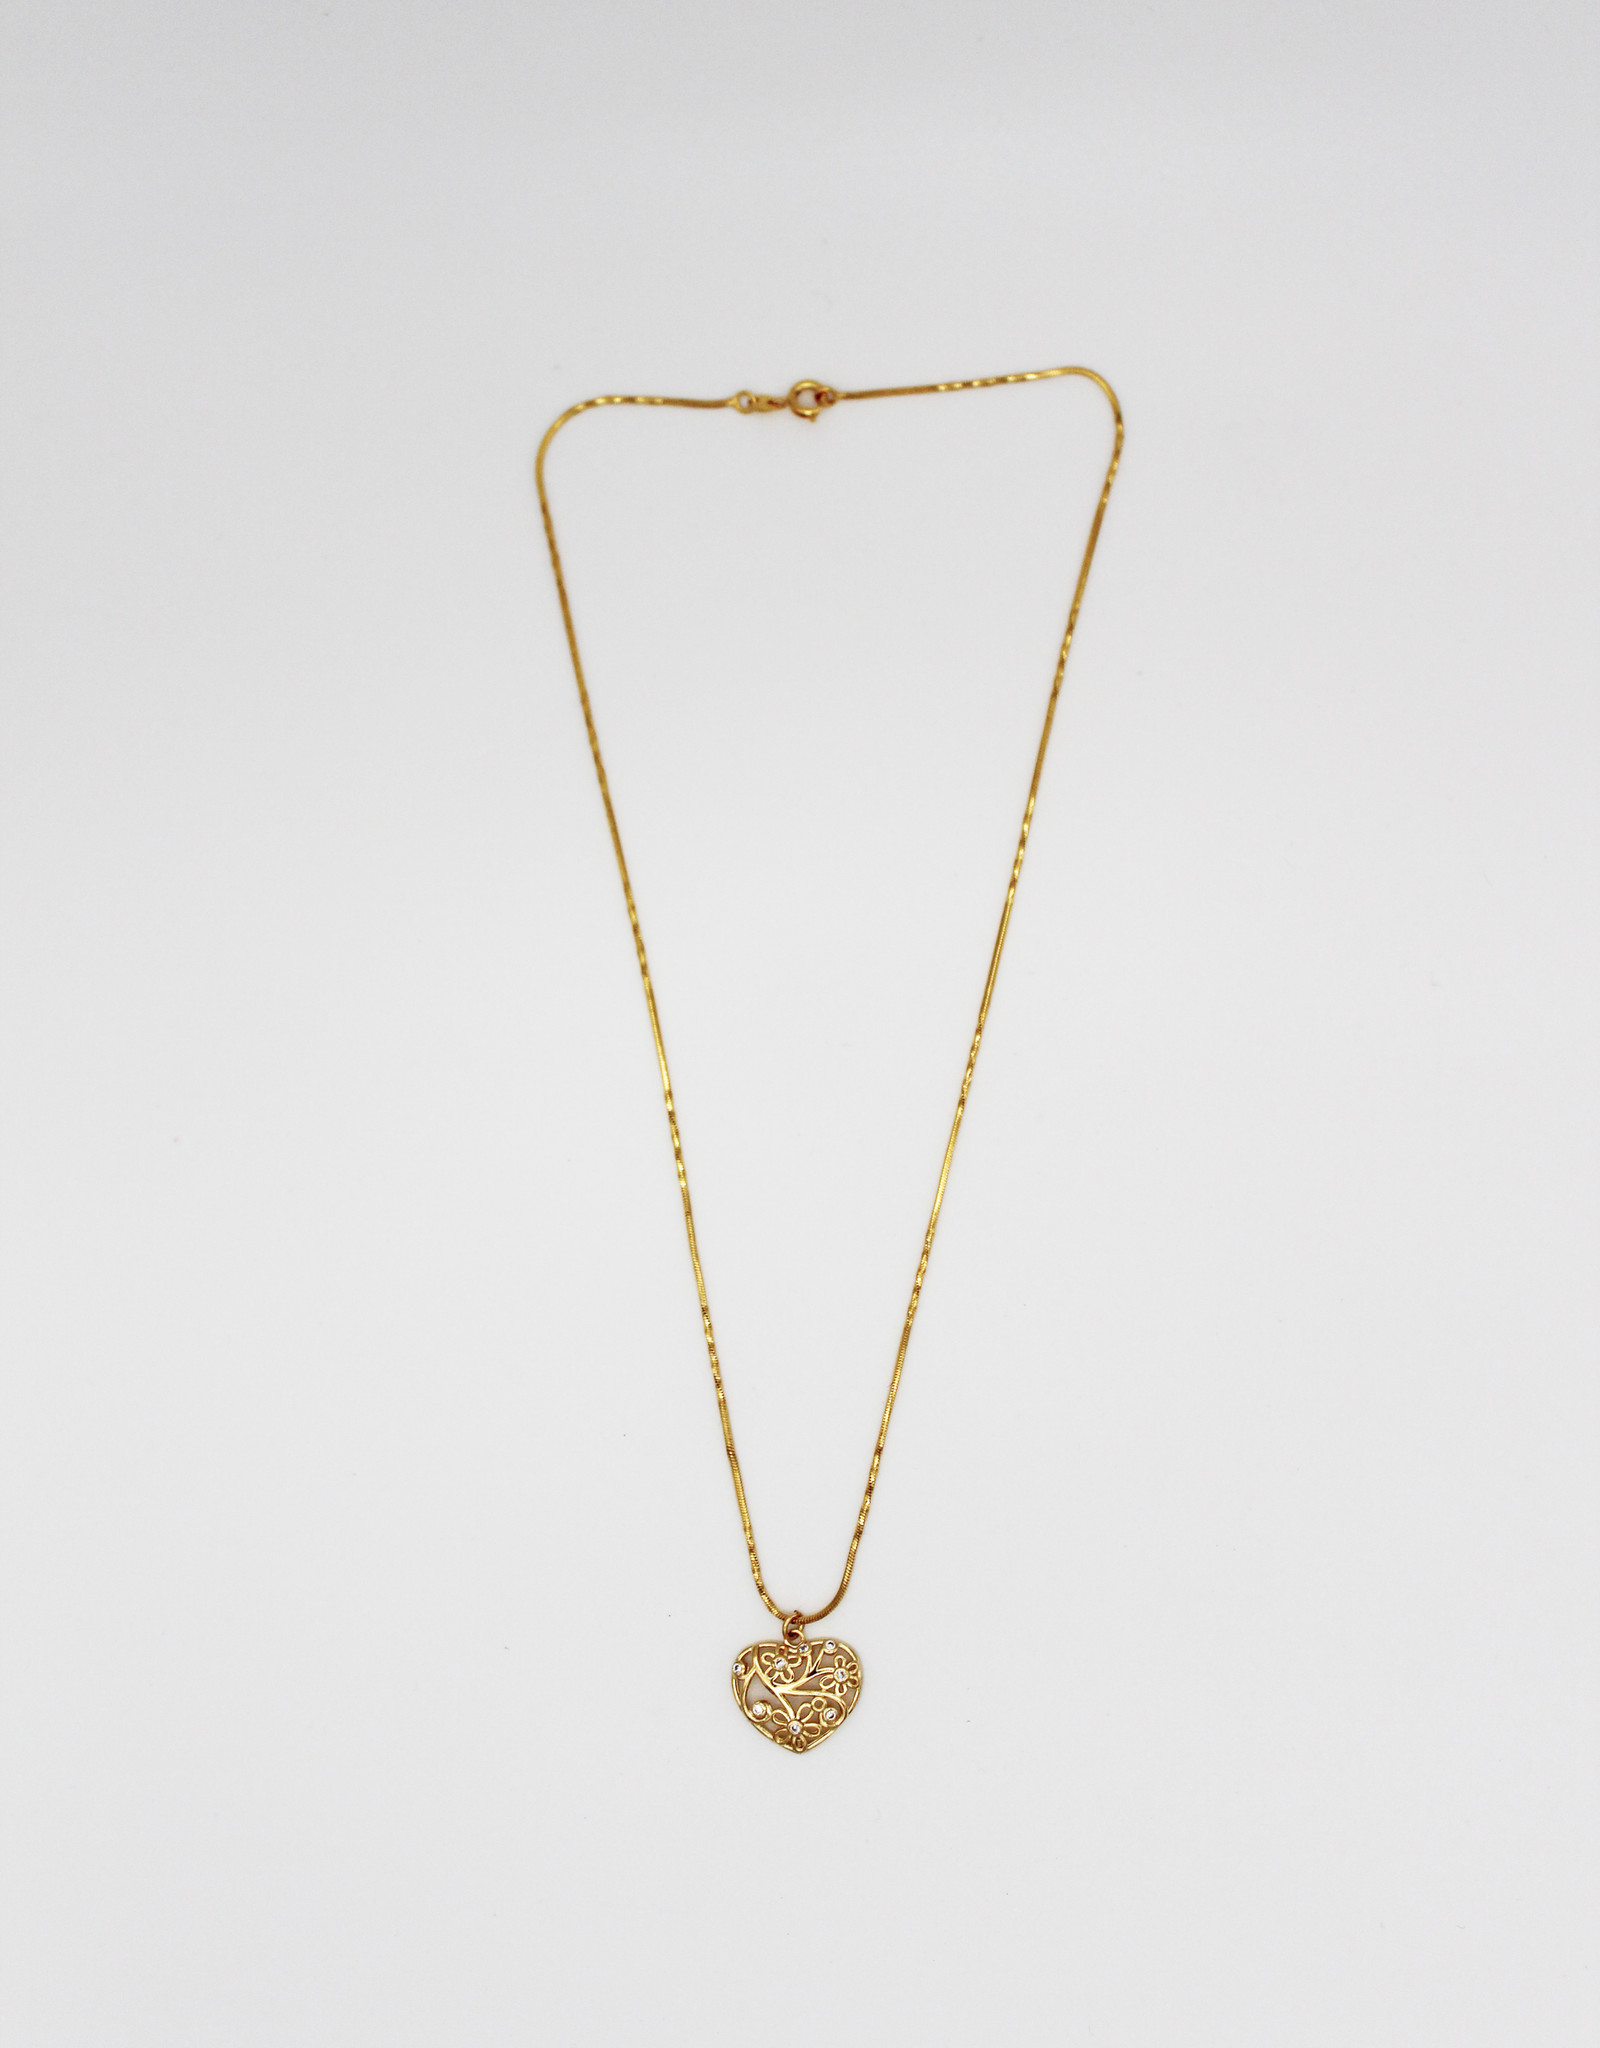 Madison Richey MR18 Heart With Flowers Gold Filled Necklace